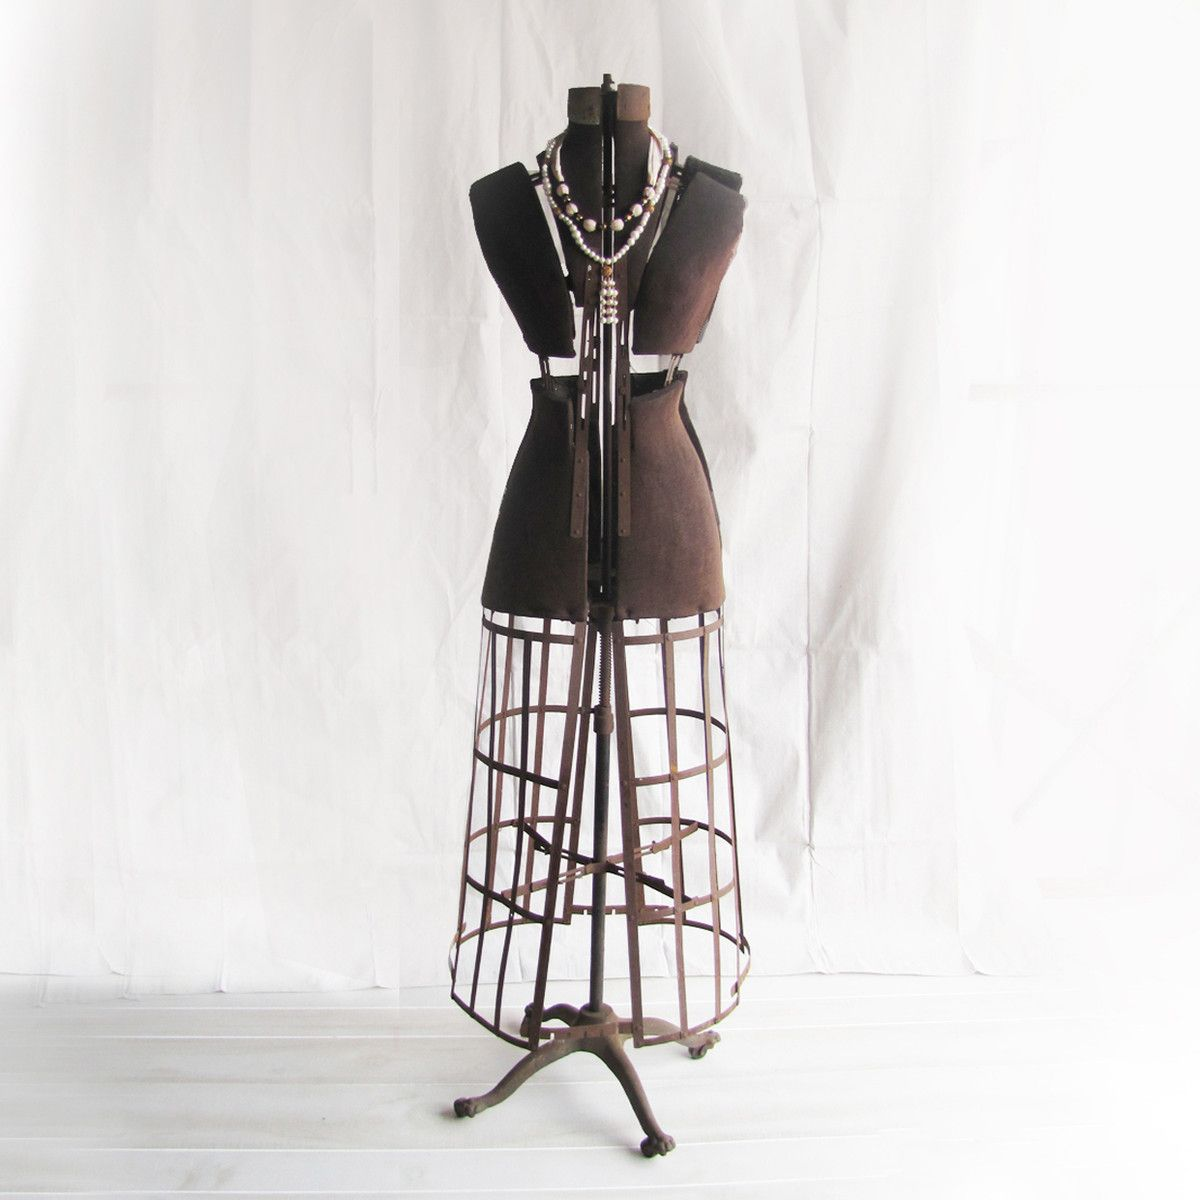 I liked this design on fab 1900s dress form vintage